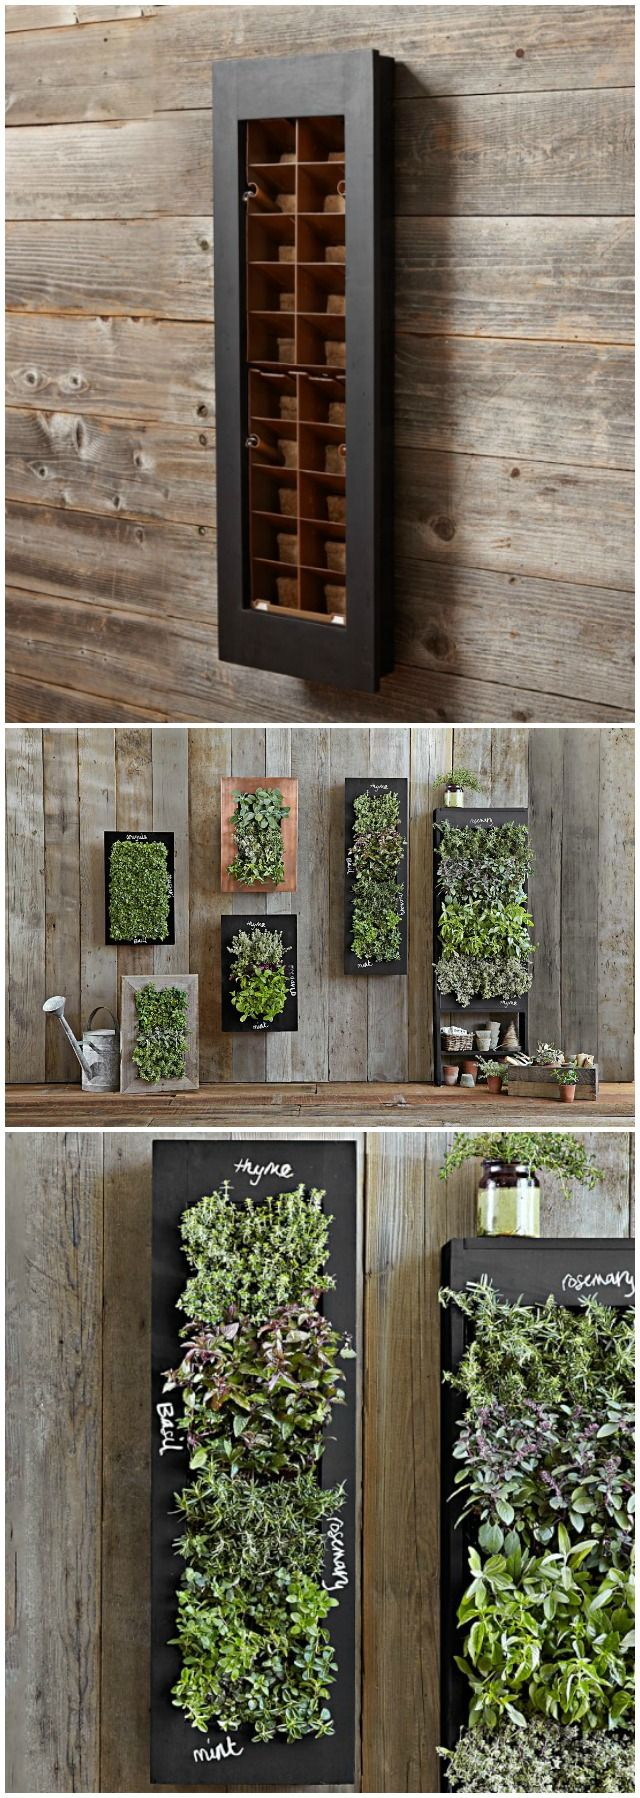 Connected wood box floating planters Vertical garden